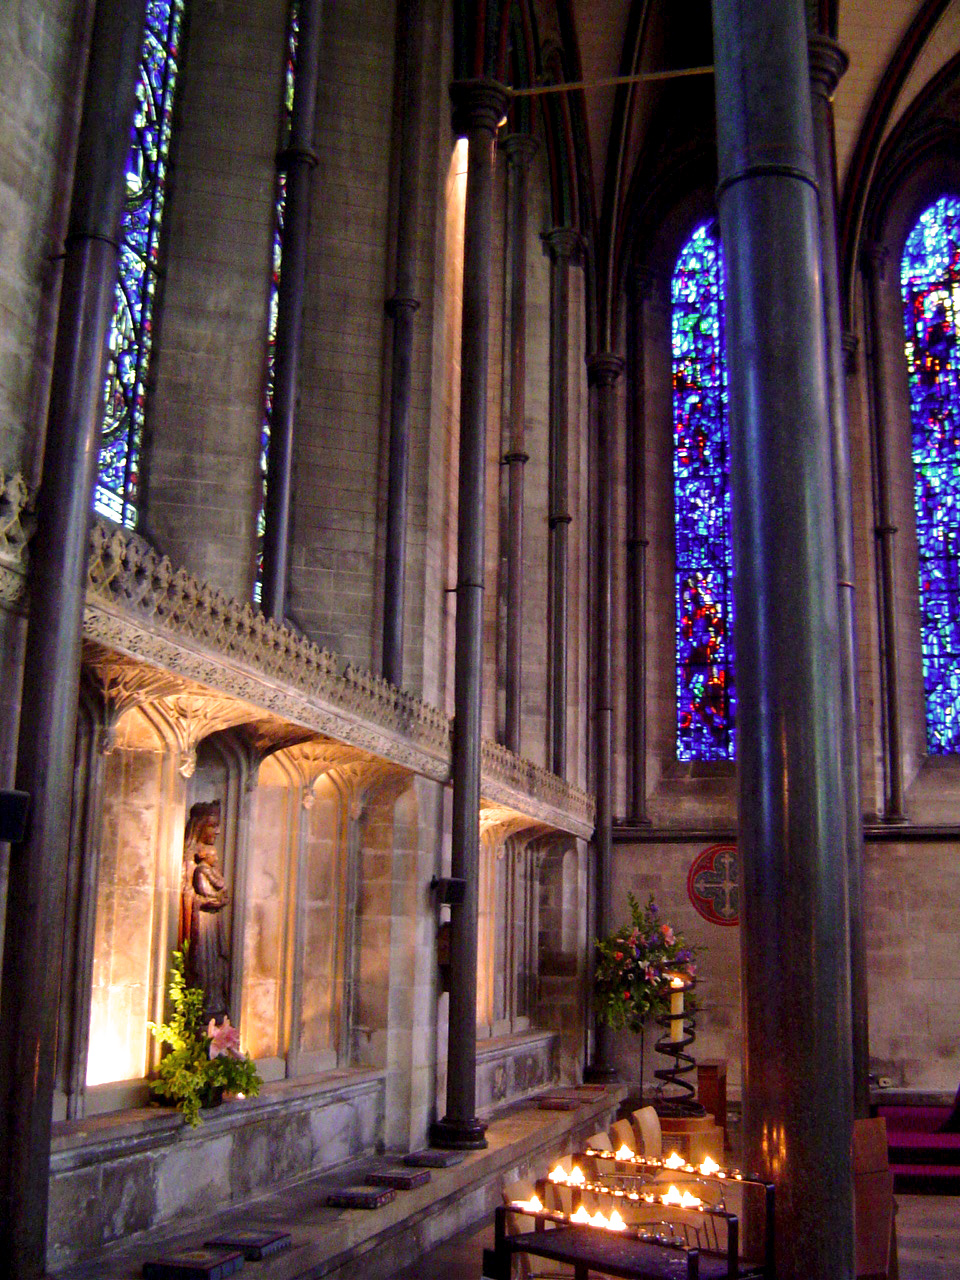 Lit candles glowing softly in a cathedral with blue stained glass windows.